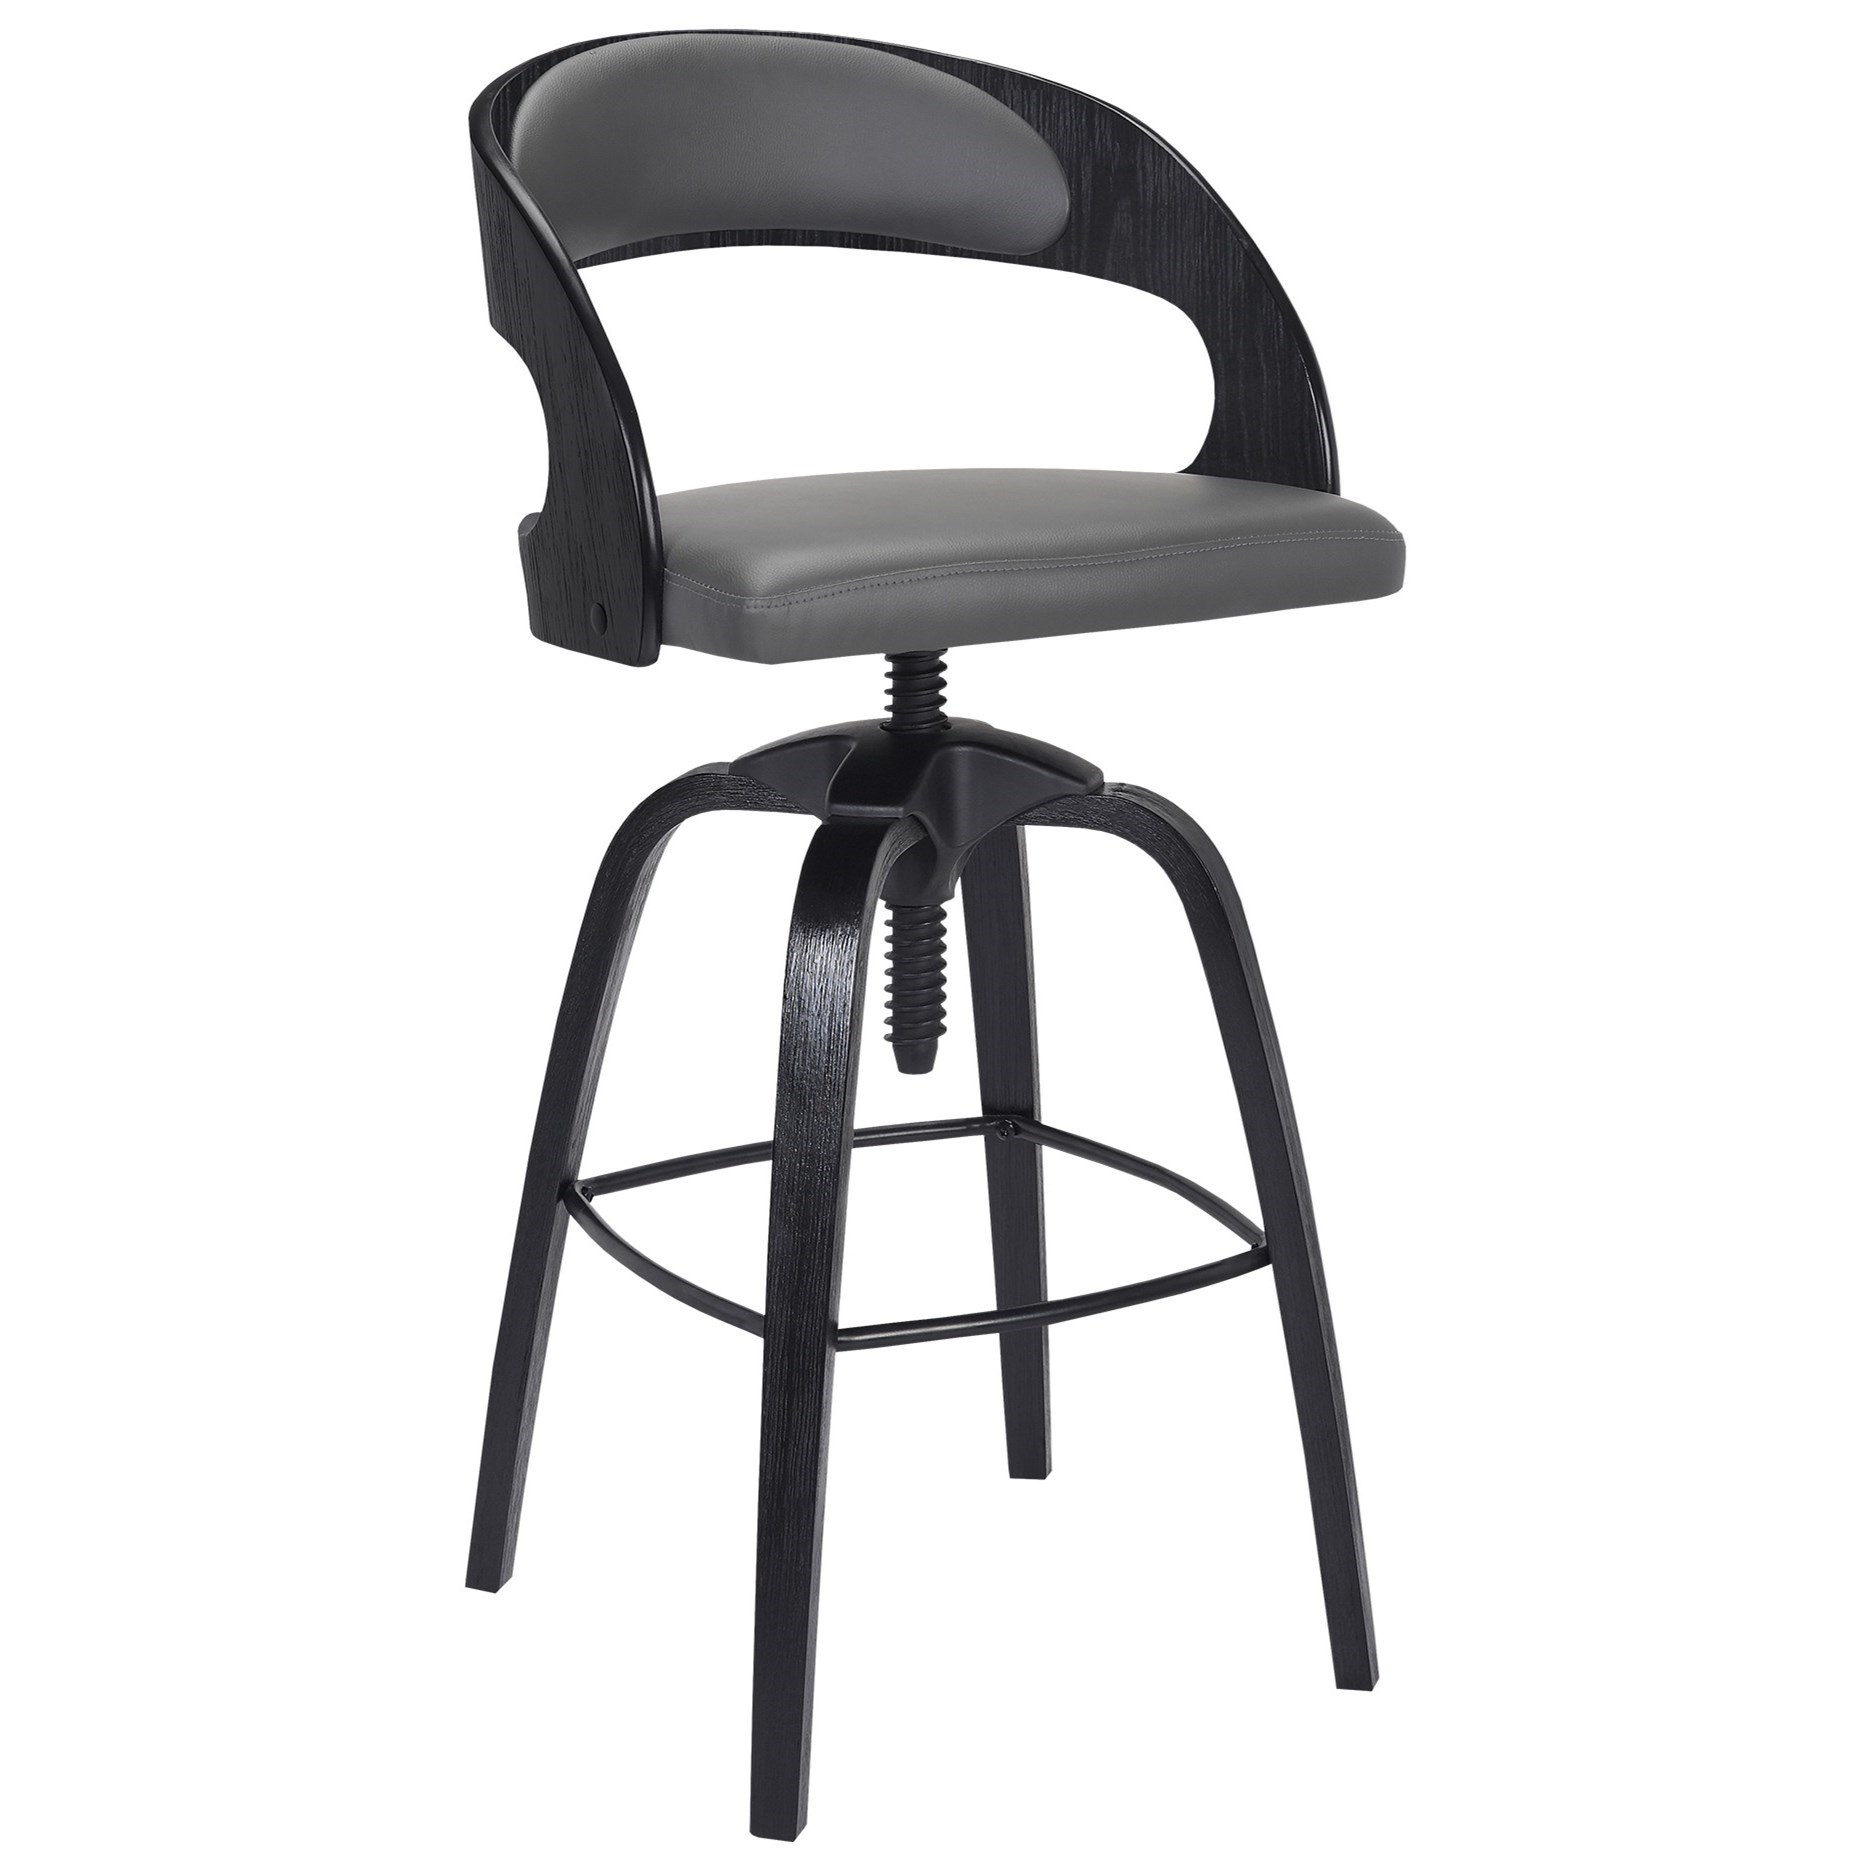 Abby Contemporary Adjustable Barstool by Armen Living at Dream Home Interiors